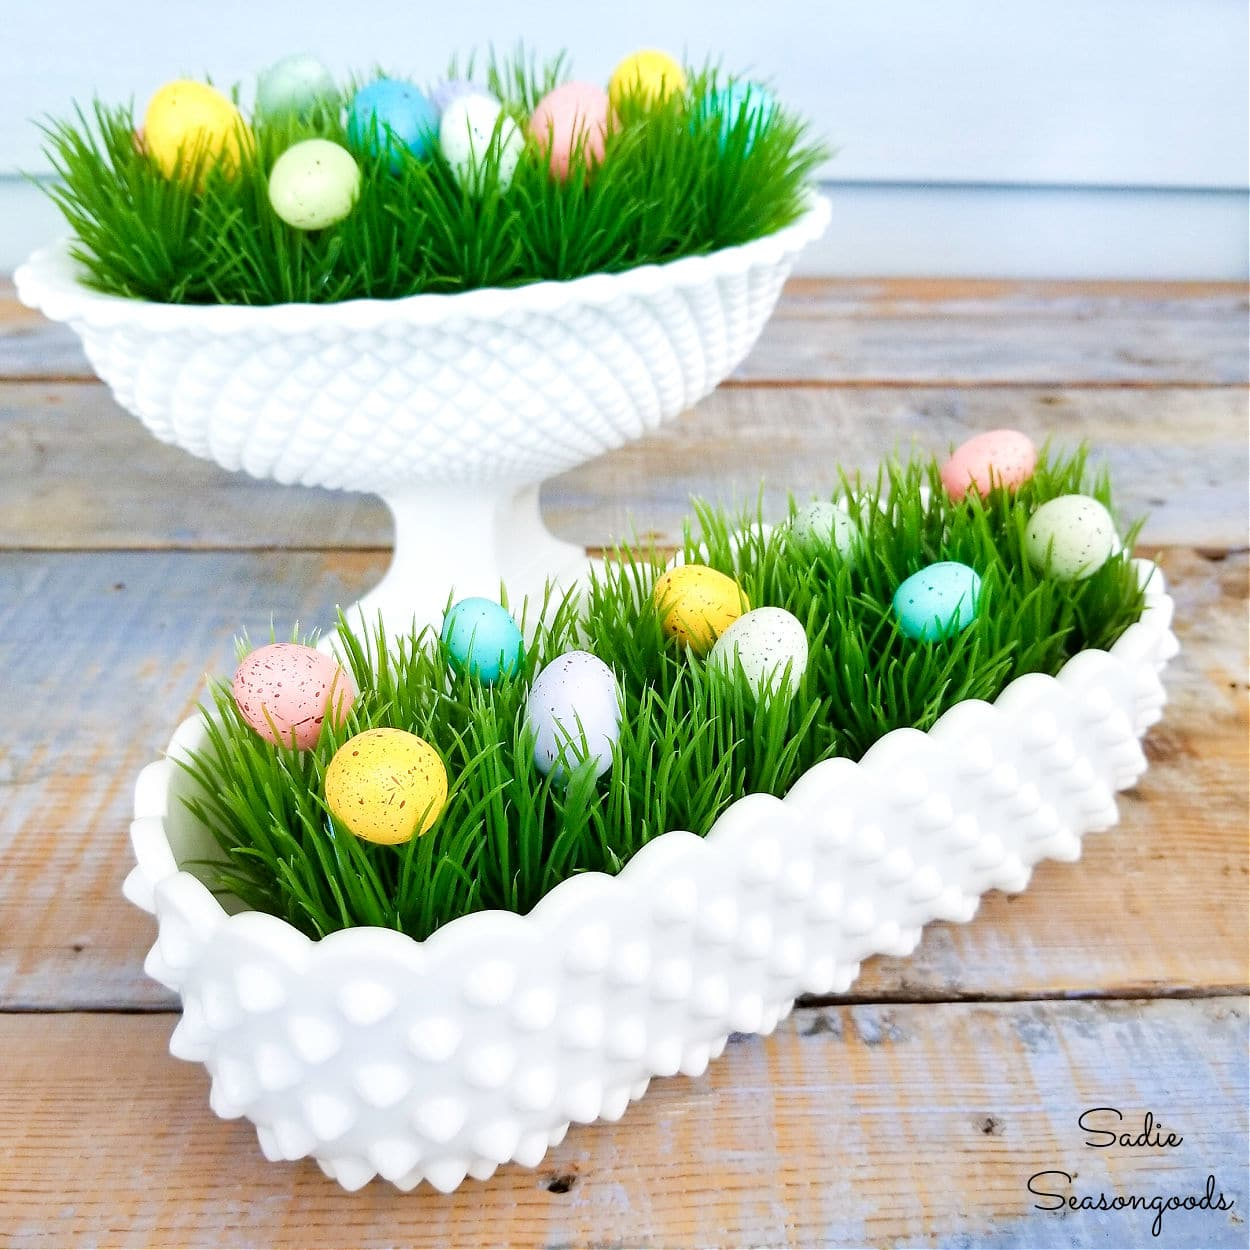 Decorating with Hobnail Milk Glass for Easter